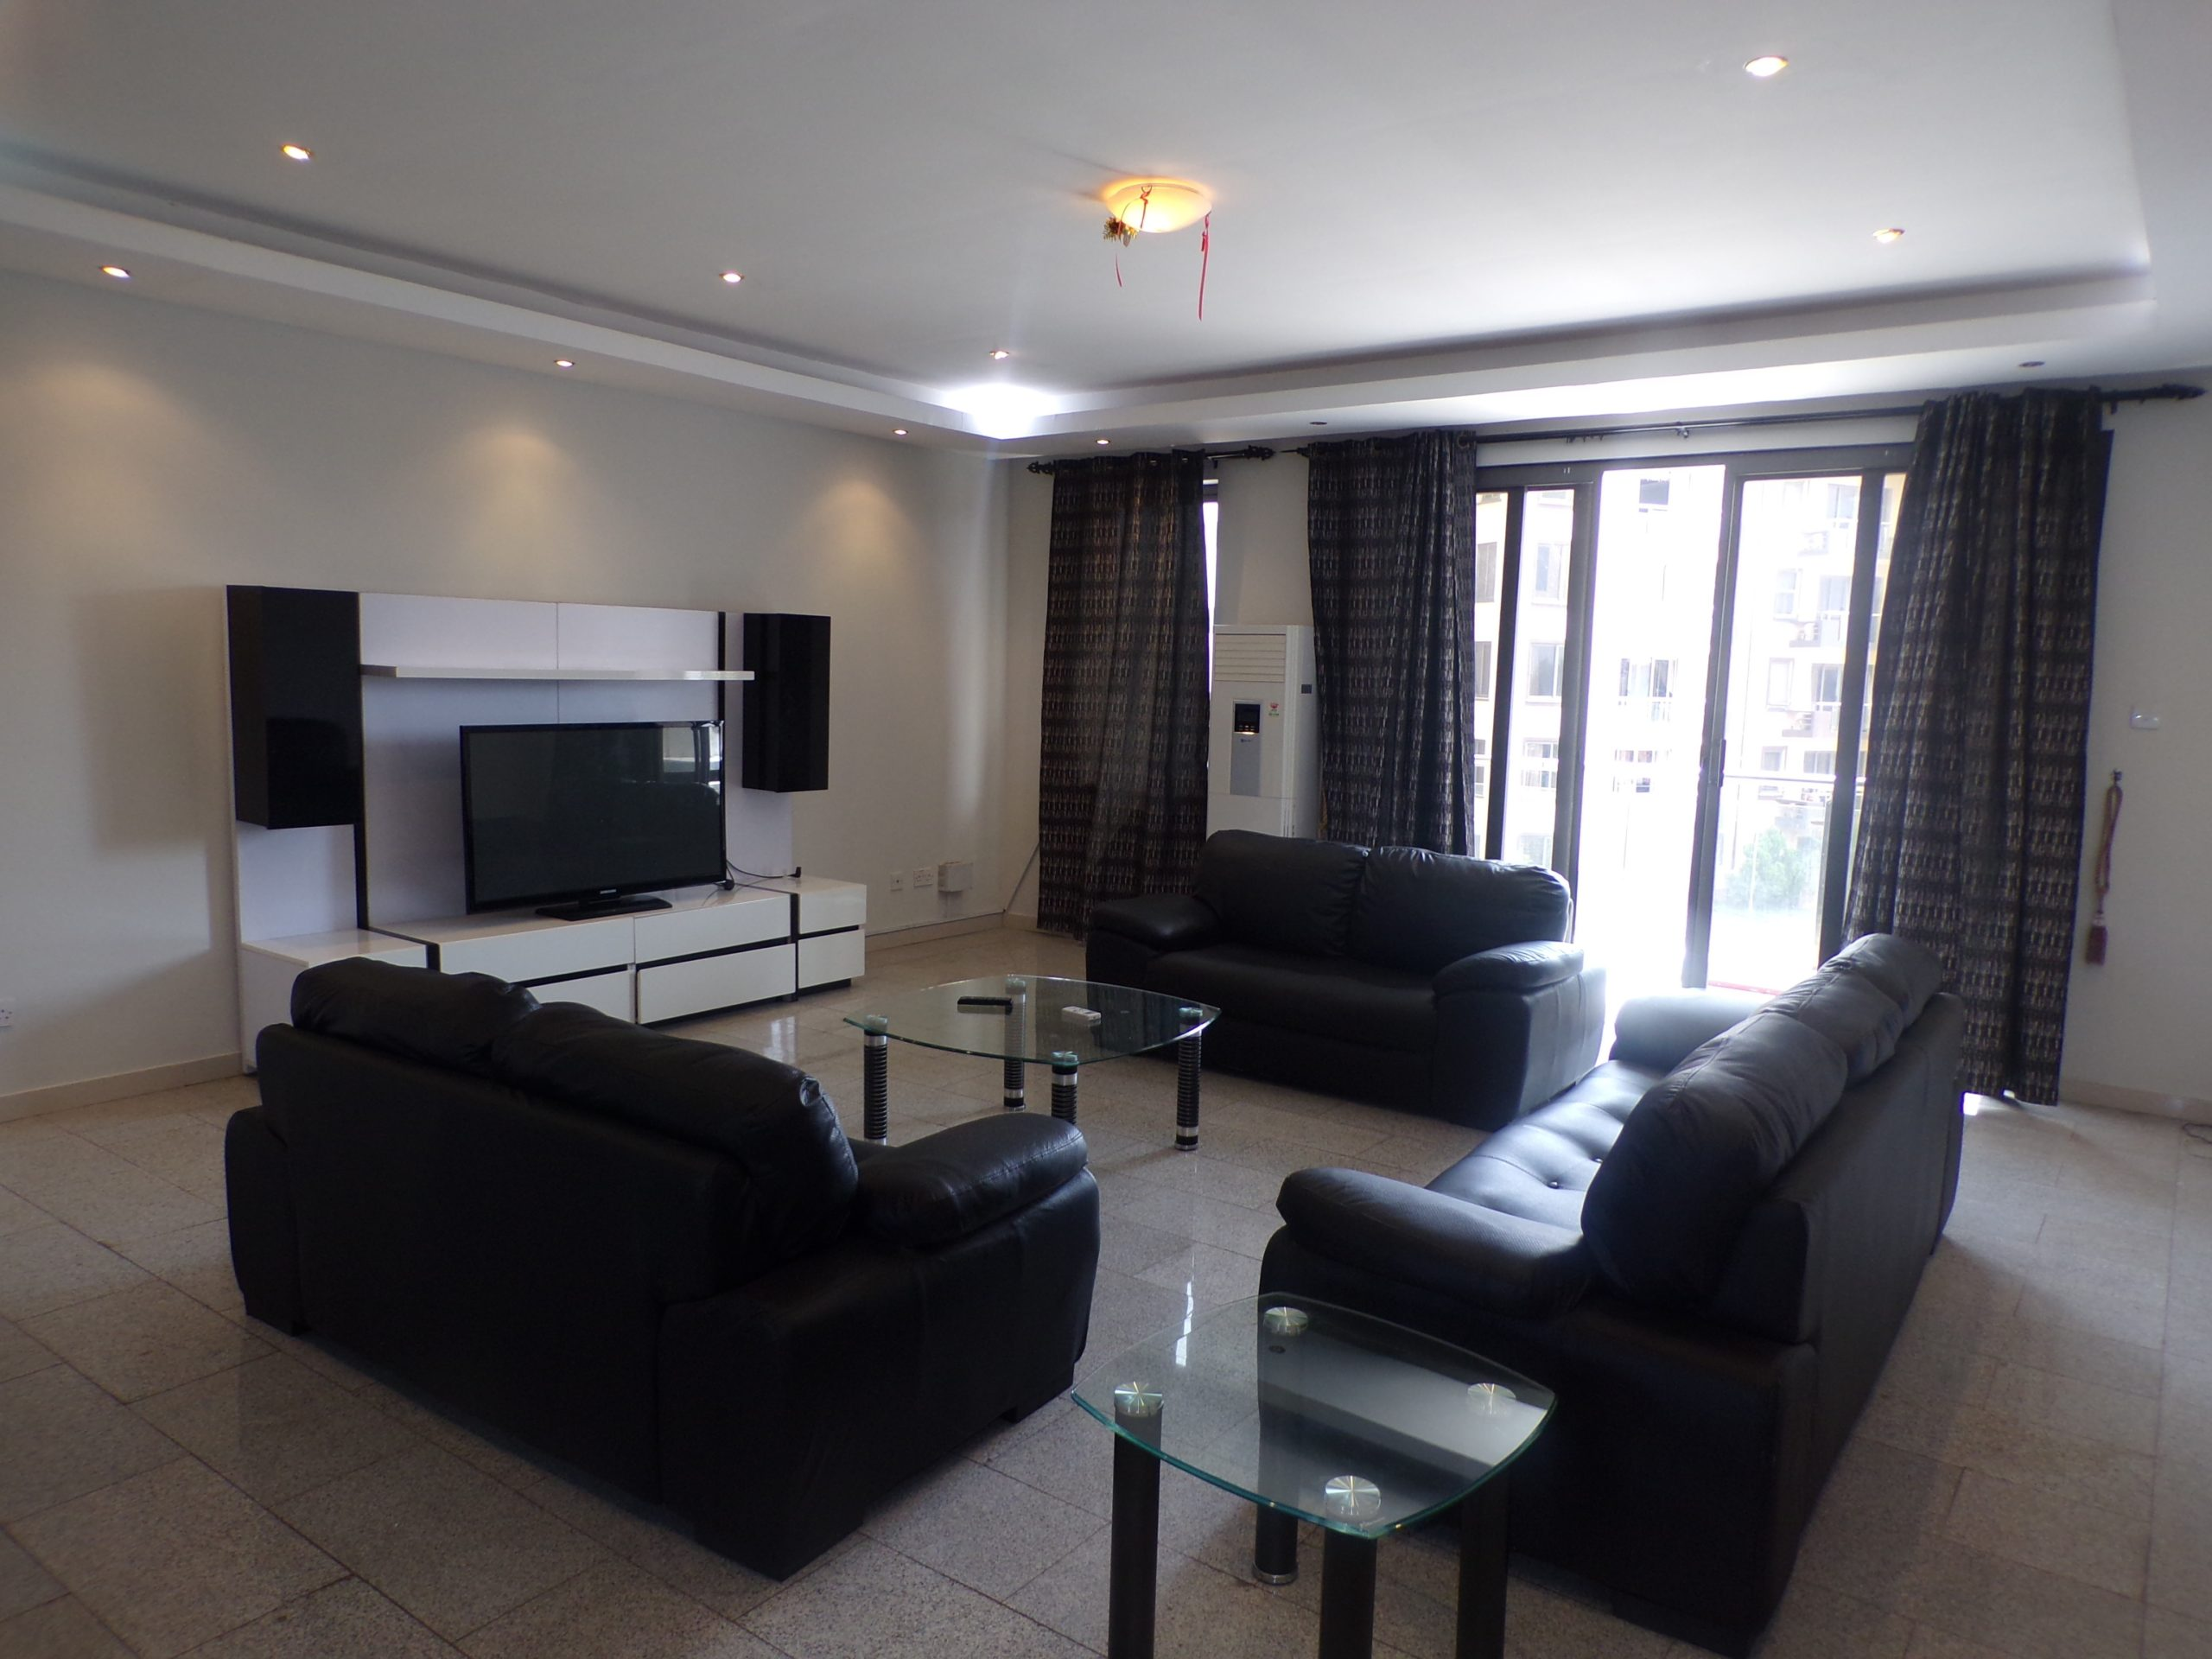 3 BEDROOM FURNISHED APARTMENT FOR RENT AT AIRPORT RESIDENTIAL